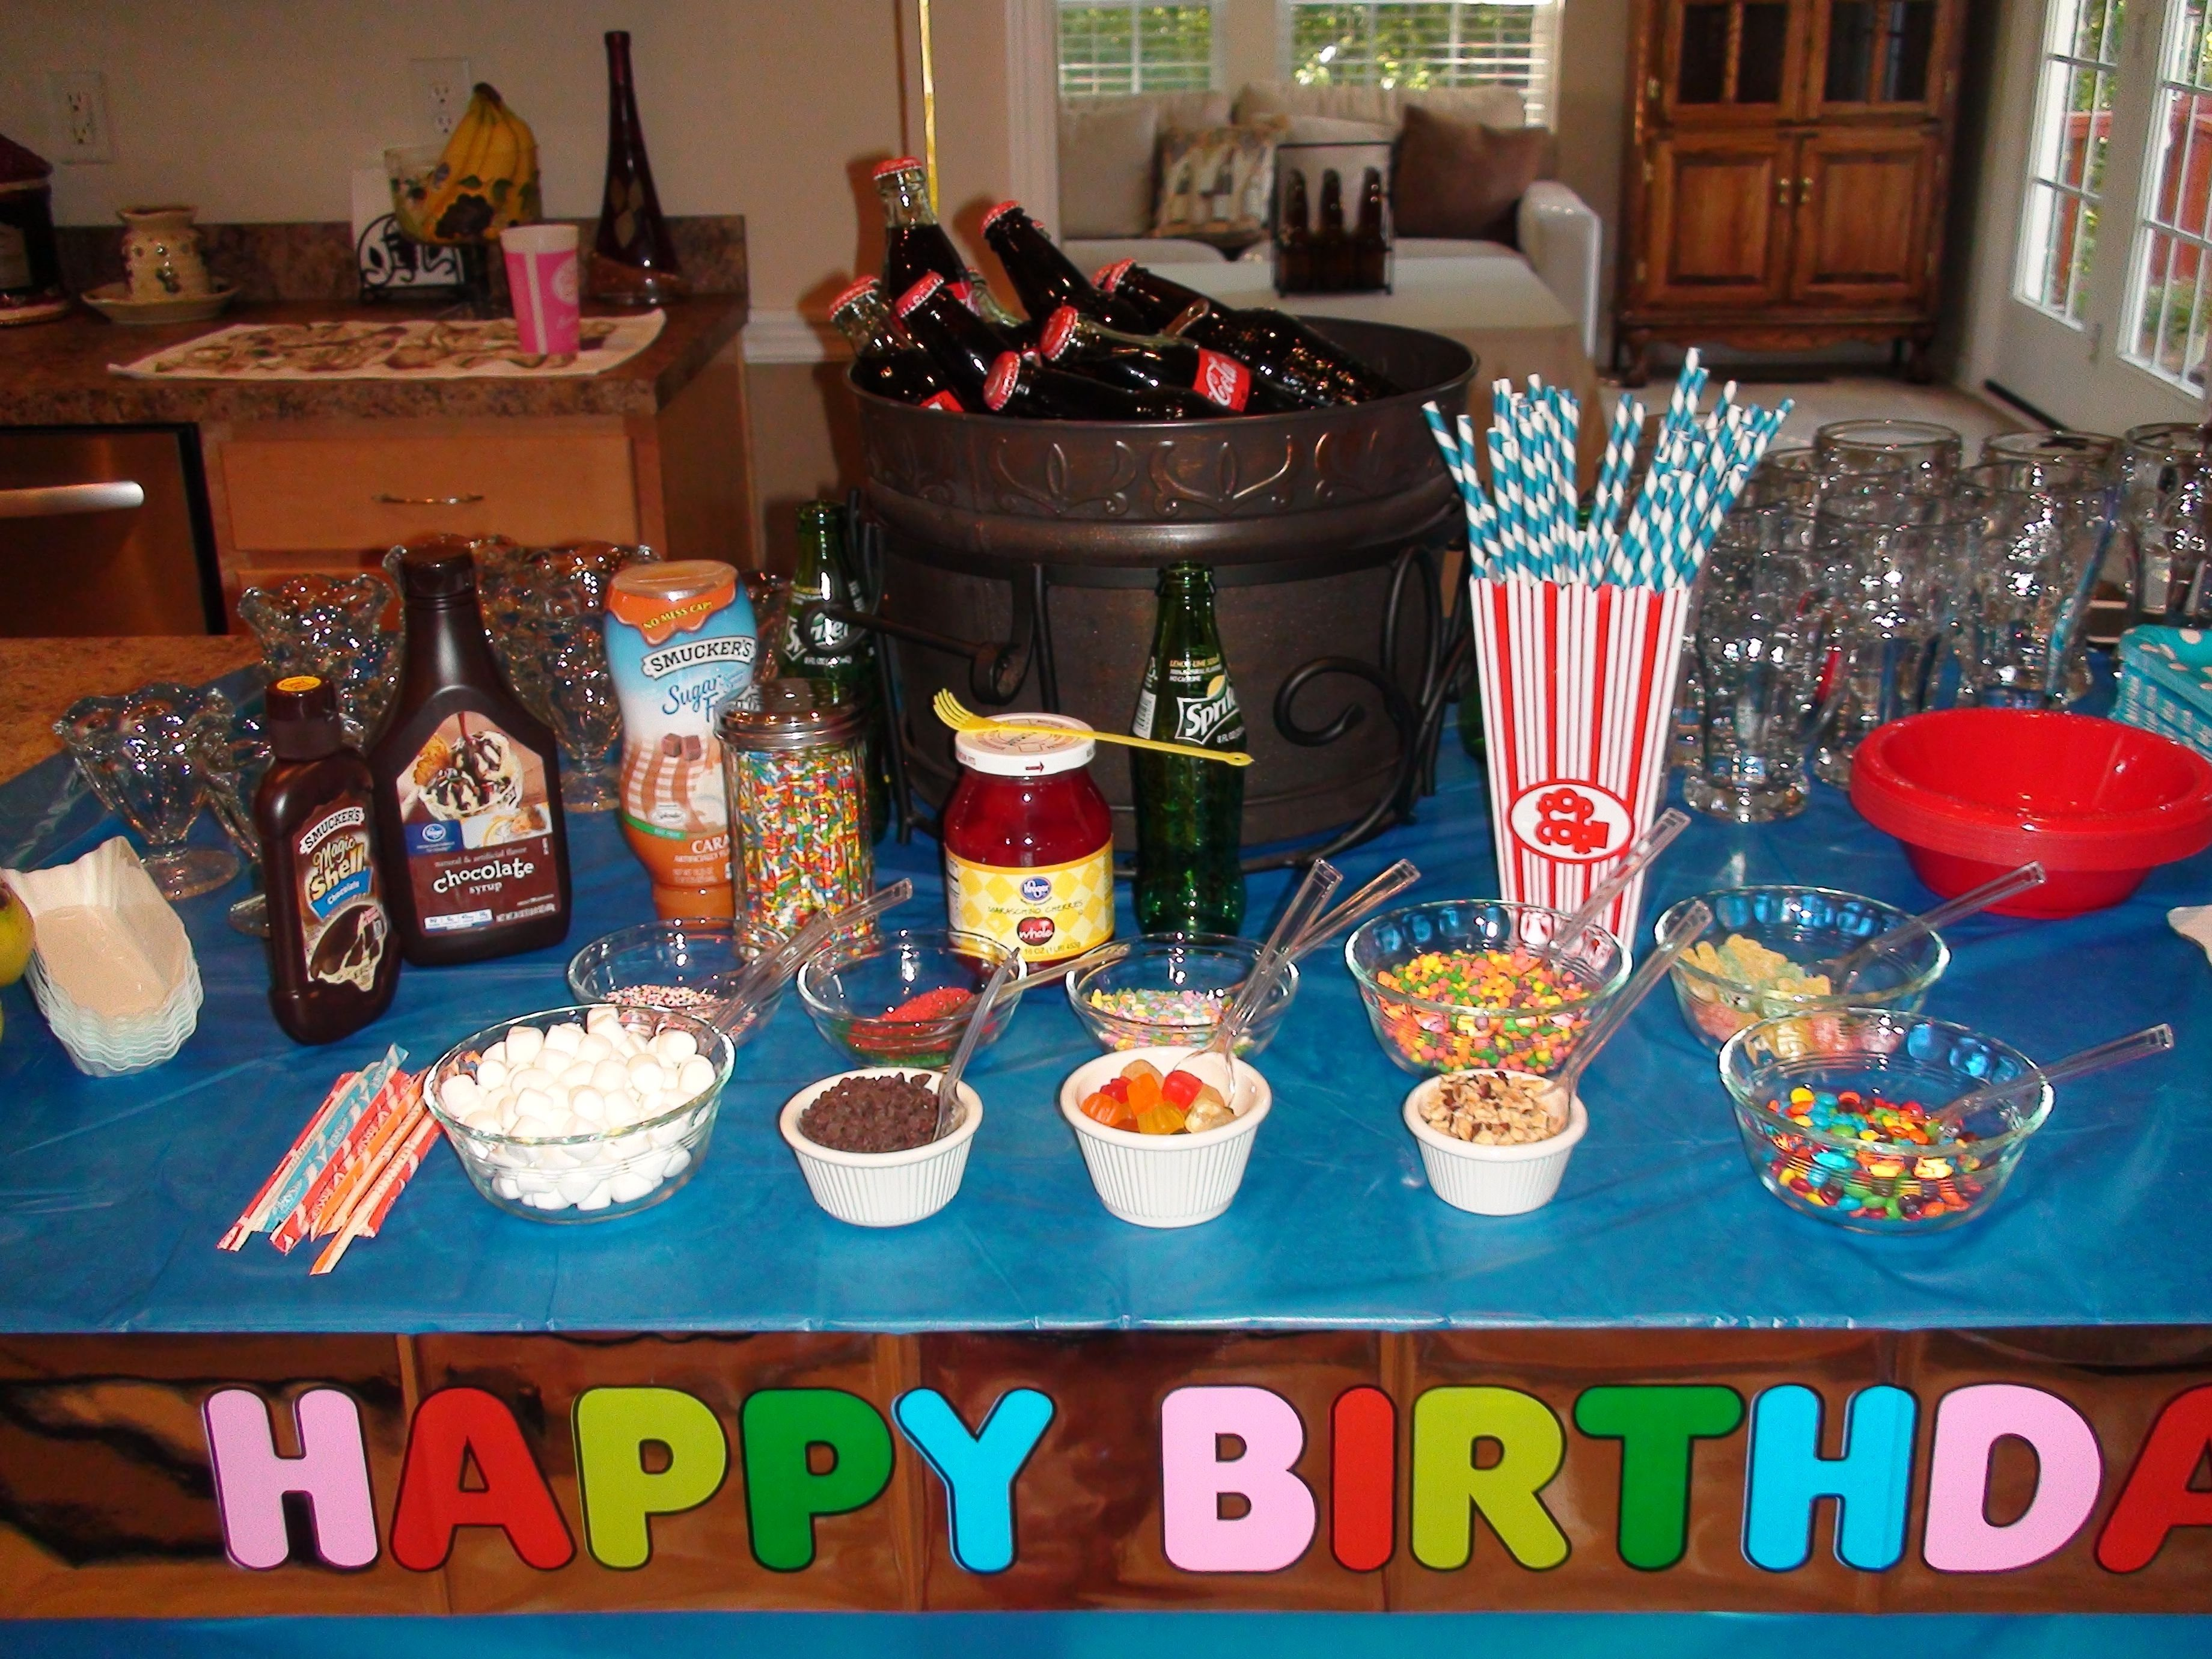 10 Fabulous Ideas For 12 Year Old Birthday Party 12 year old party root beer floats banana splits ice cream with 9